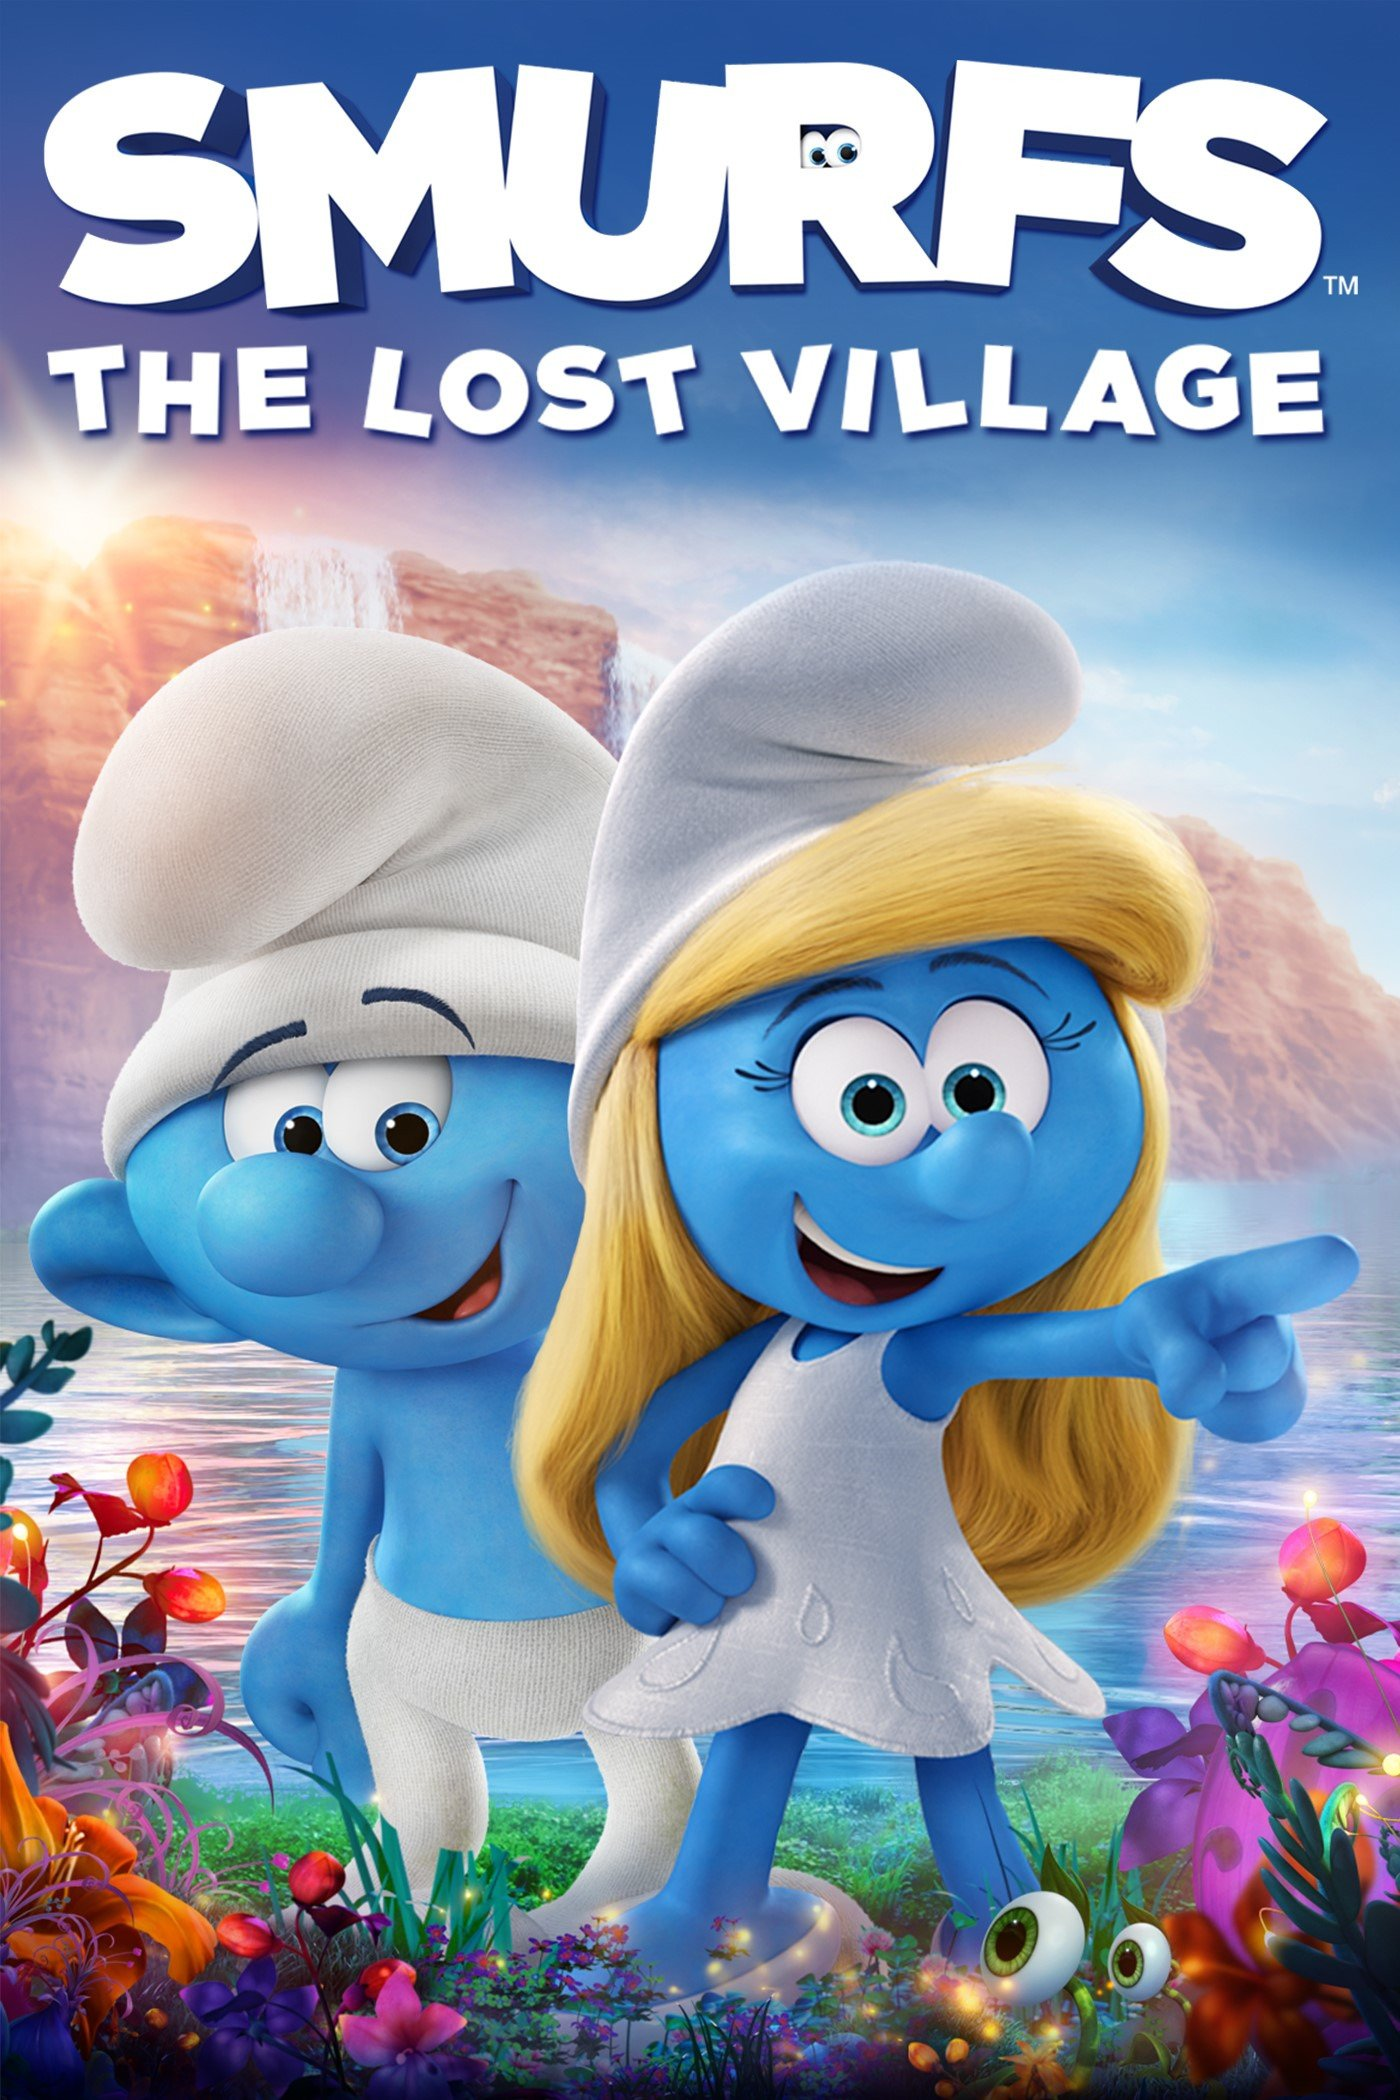 Smurfs: The Lost Village (4K UHD) on Amazon Prime Video UK